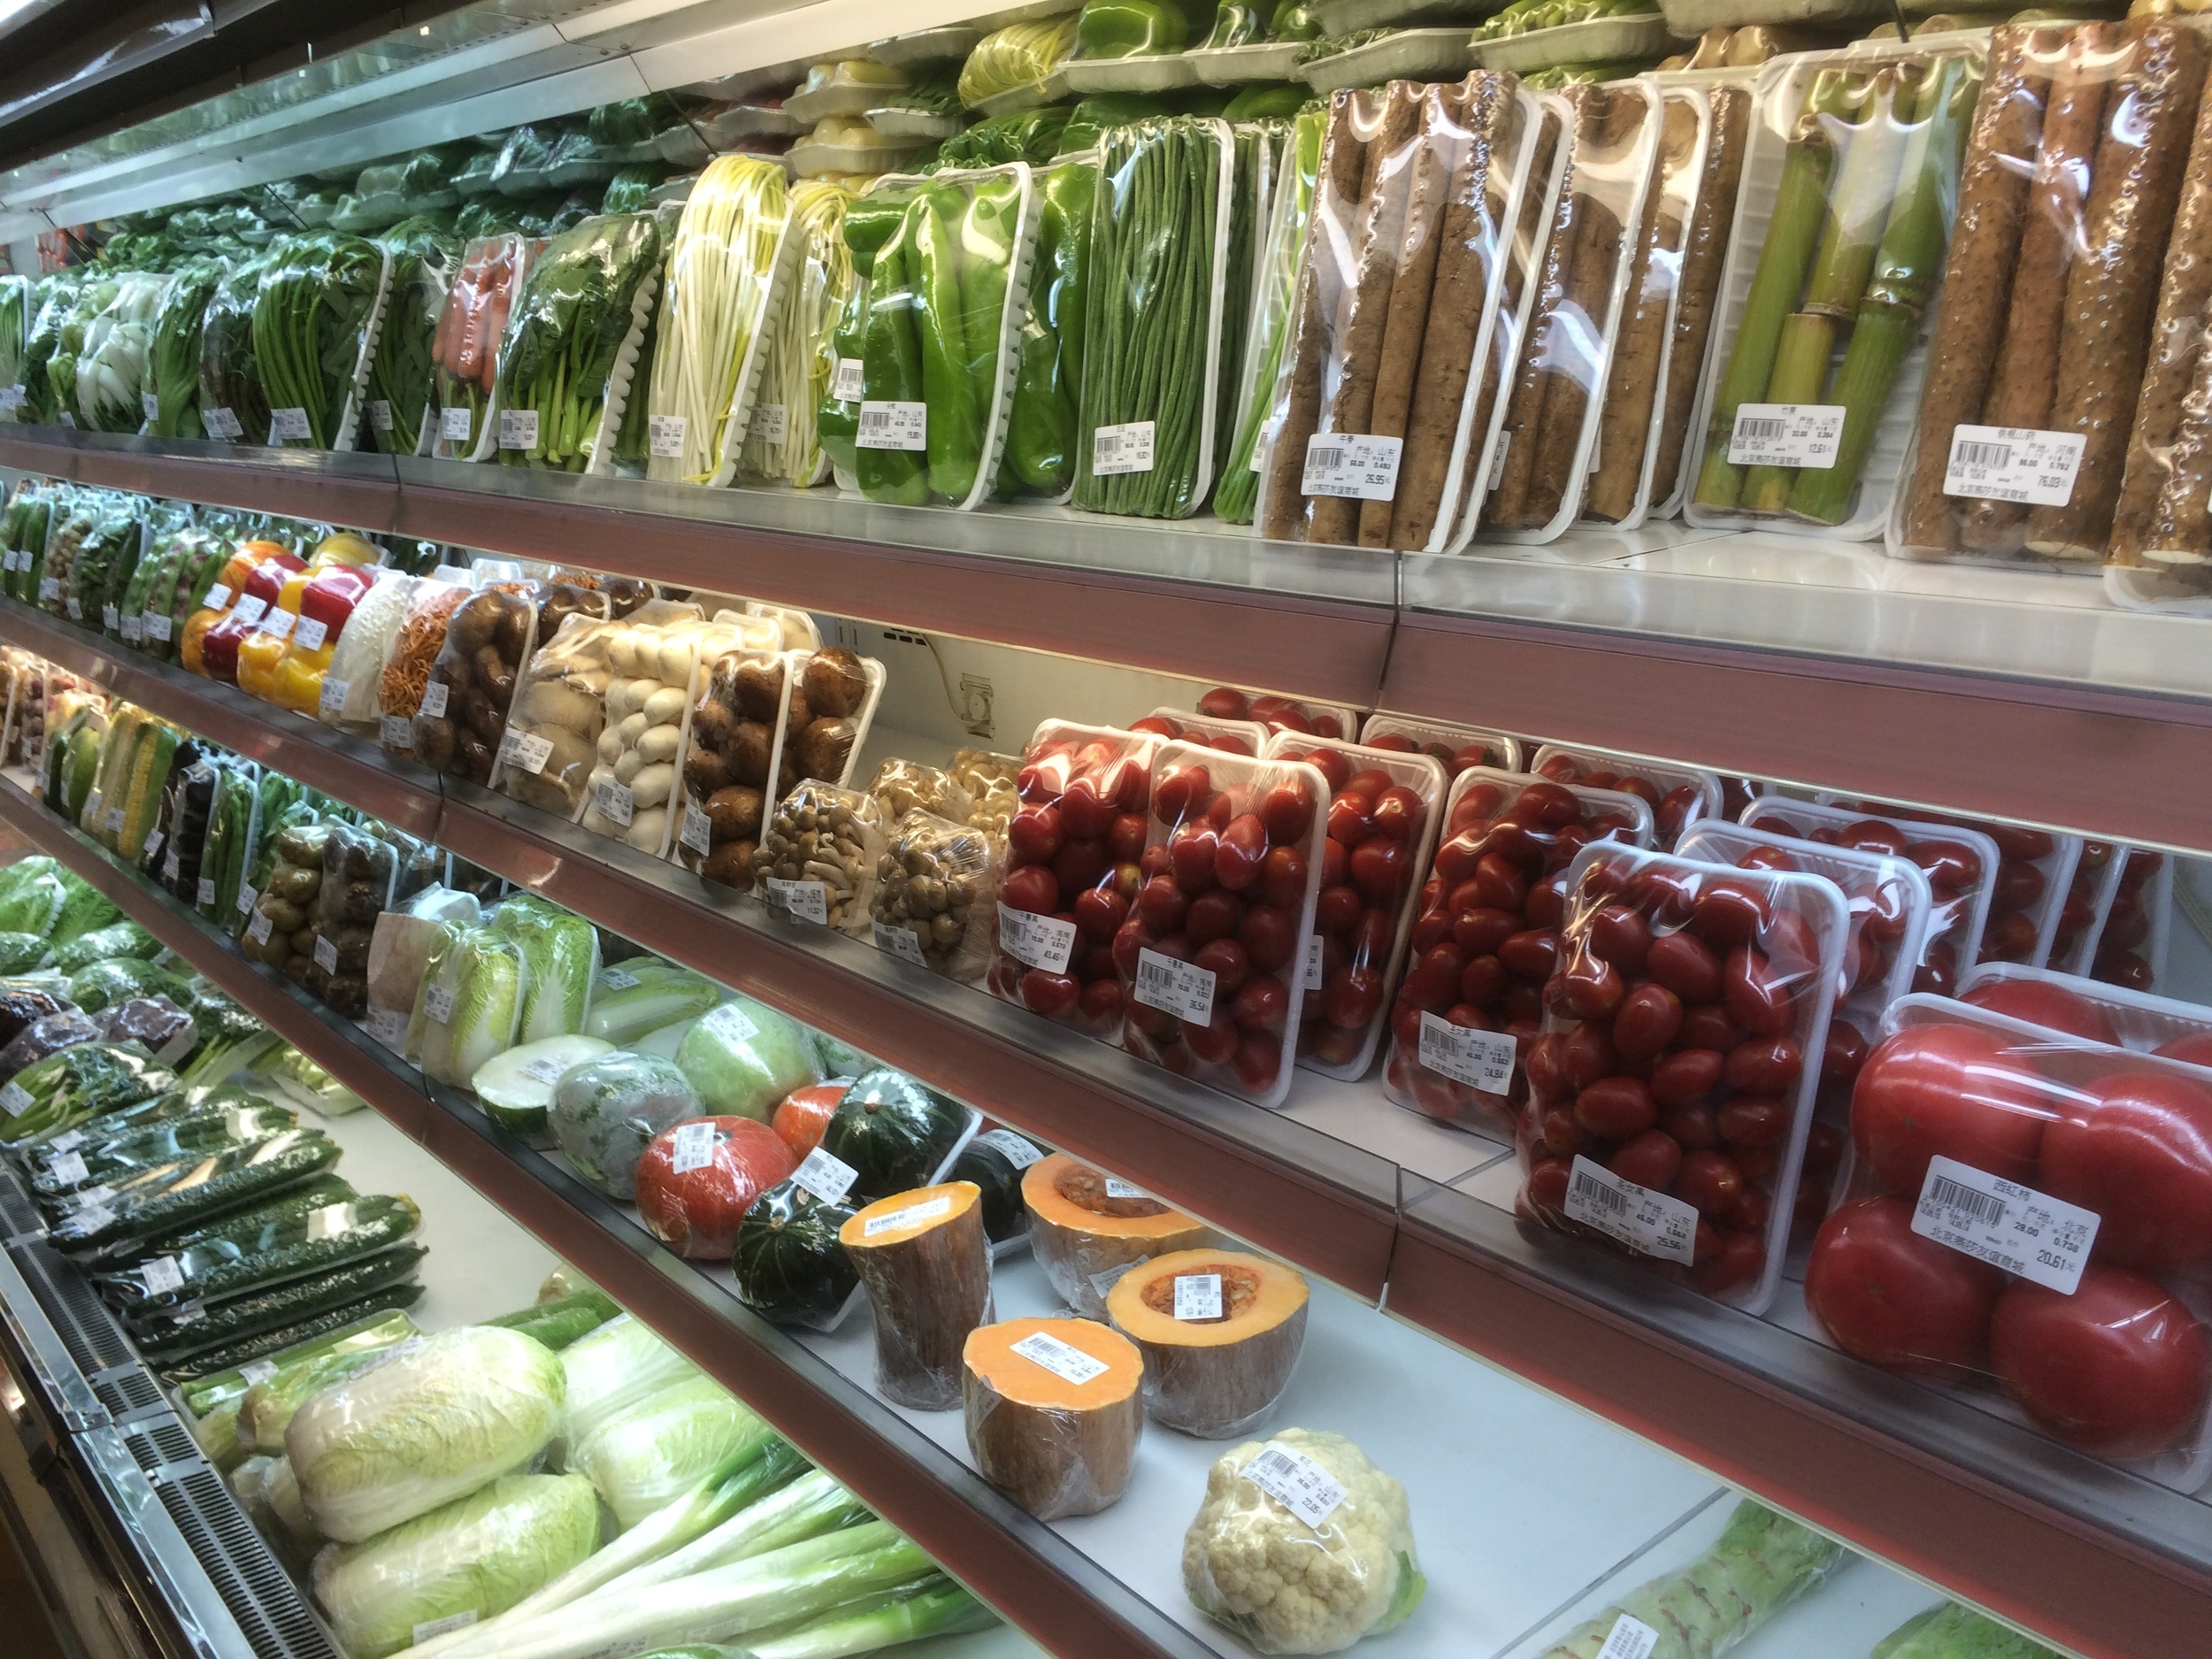 all of the produce in the store is wrapped up like this. certainly nice and tidy.